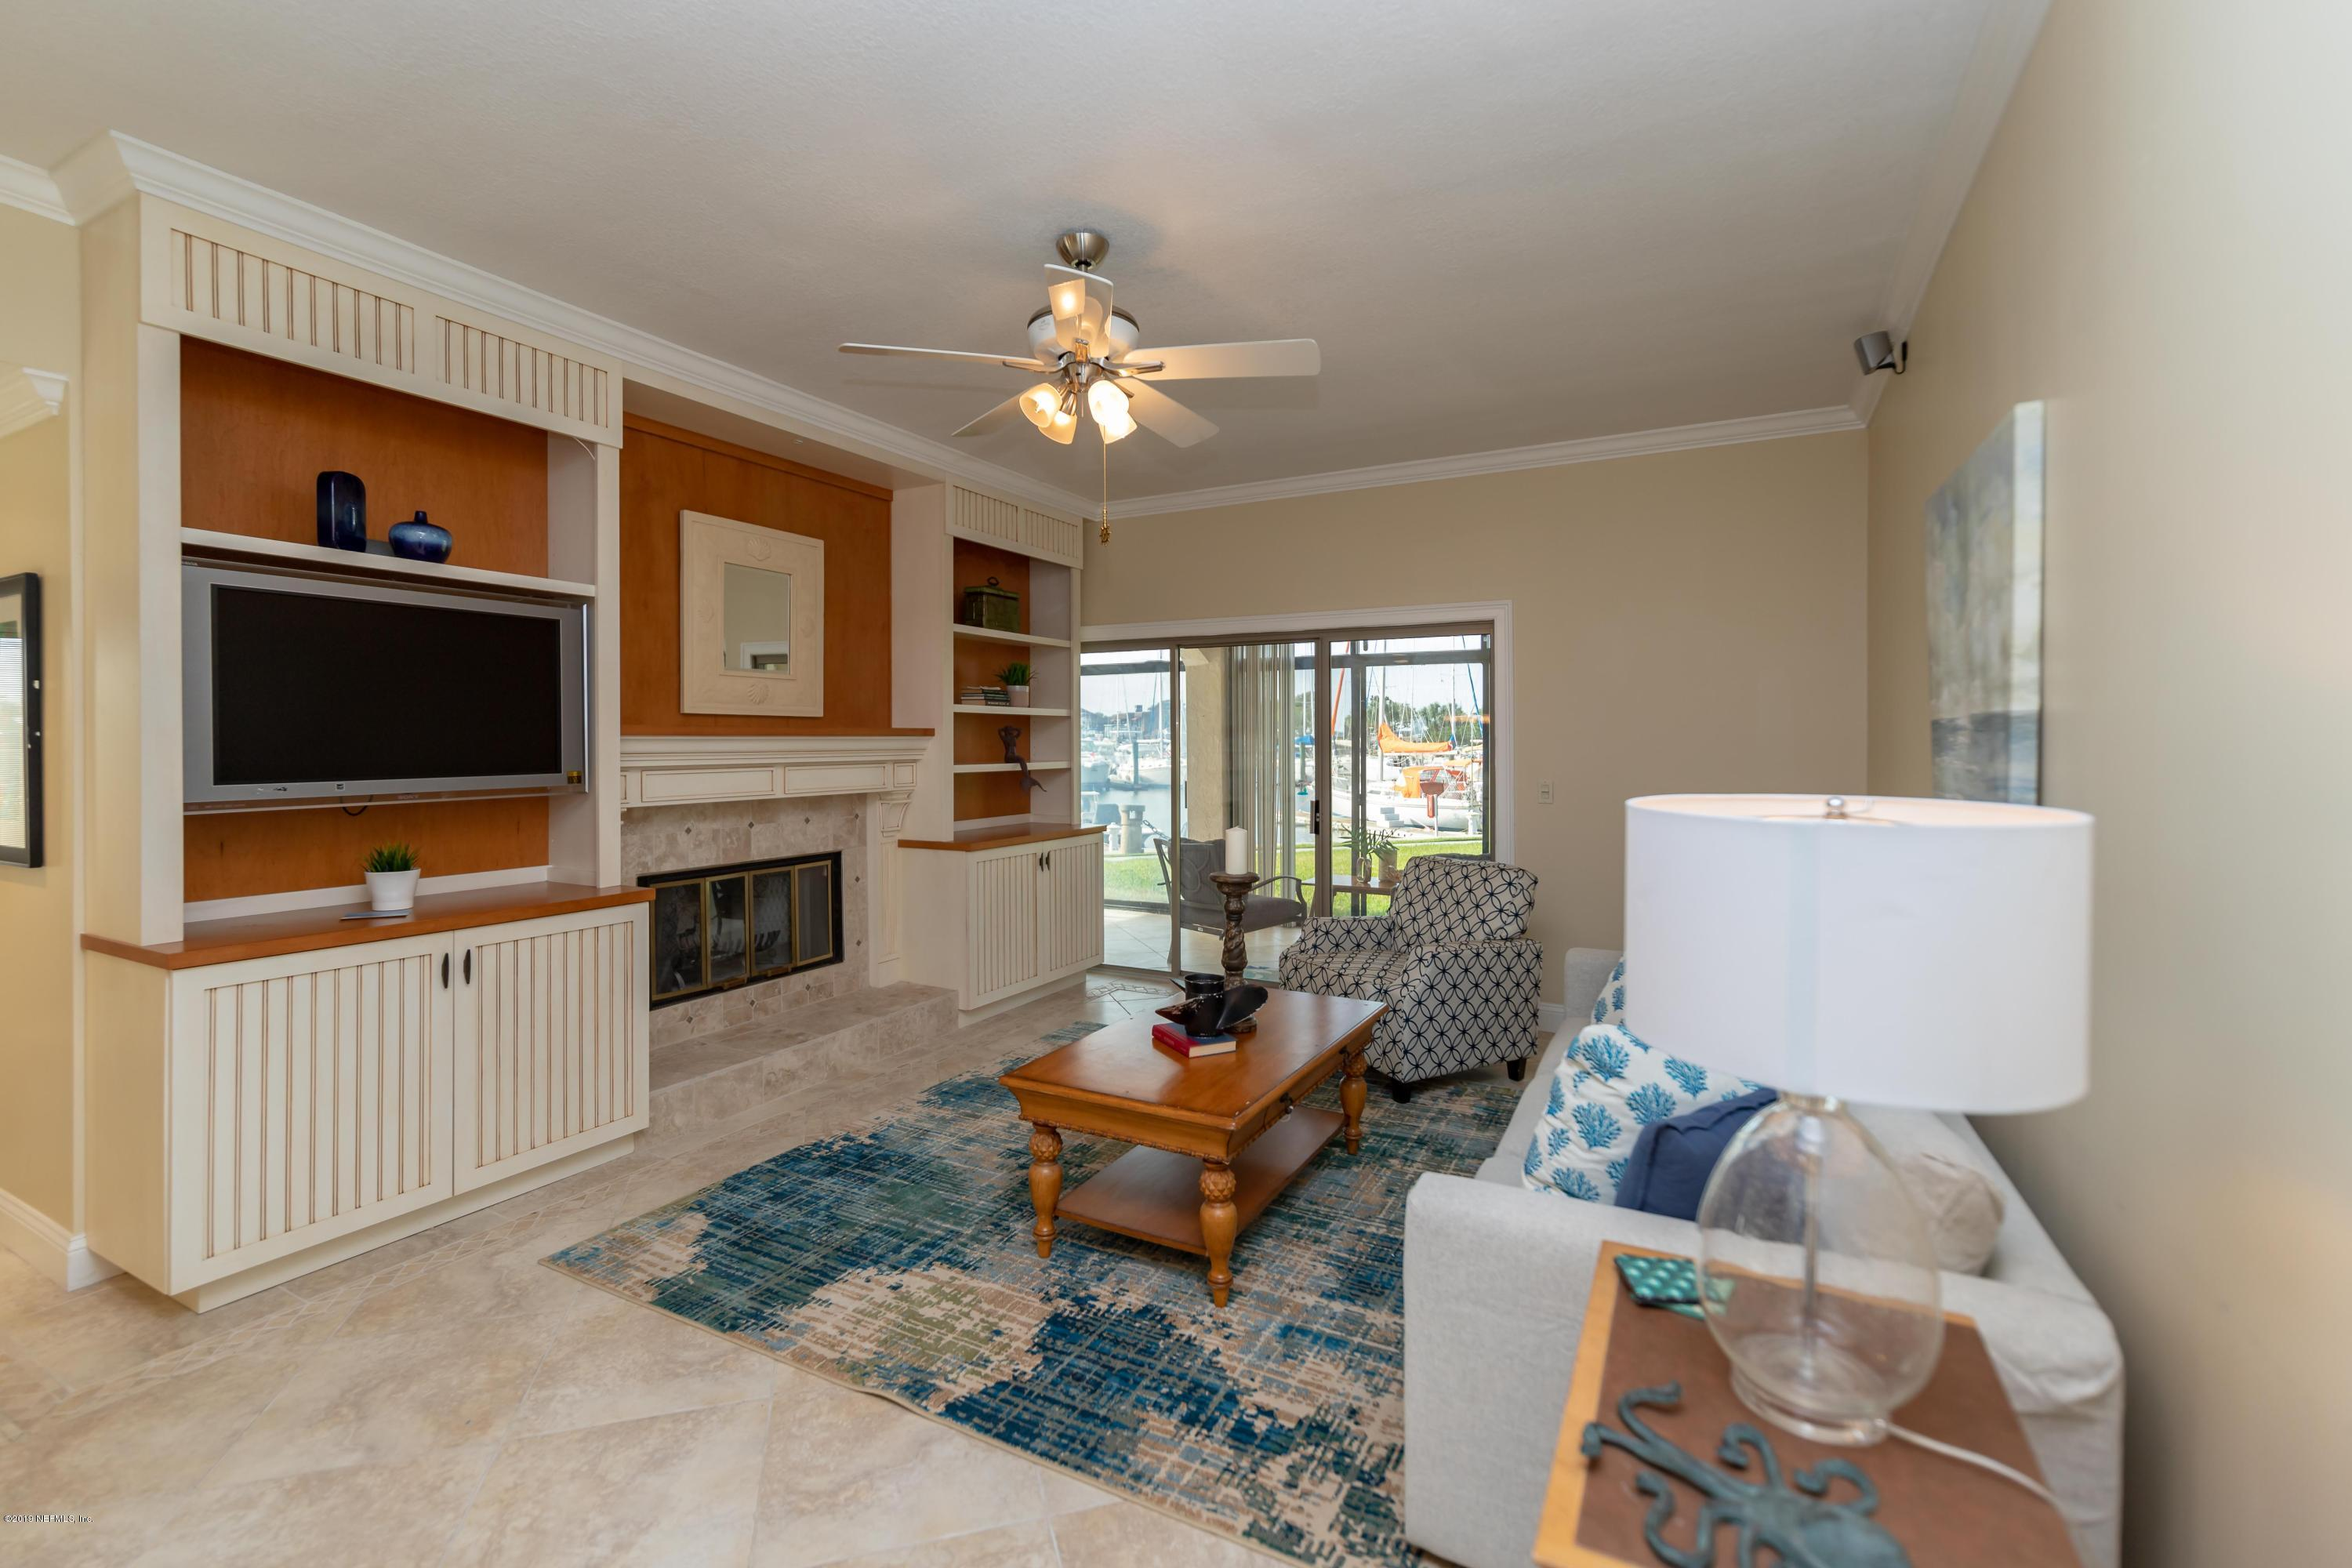 3501 HARBOR, ST AUGUSTINE, FLORIDA 32084, 3 Bedrooms Bedrooms, ,3 BathroomsBathrooms,Condo,For sale,HARBOR,986041